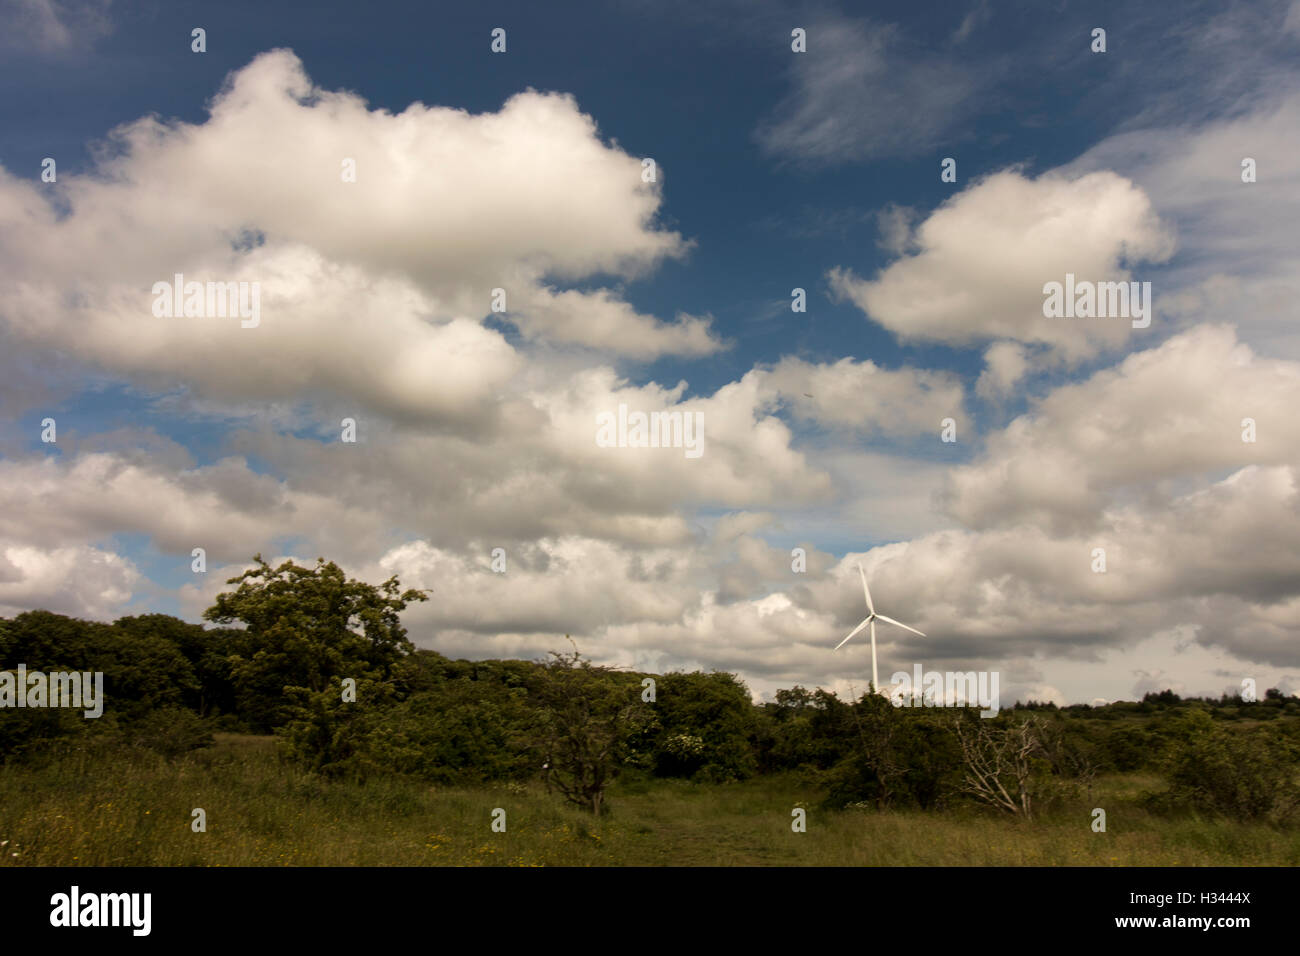 wide angle, field with trees and pretty blue sky with white fluffy clouds and a wind mill on the horizon - Stock Image